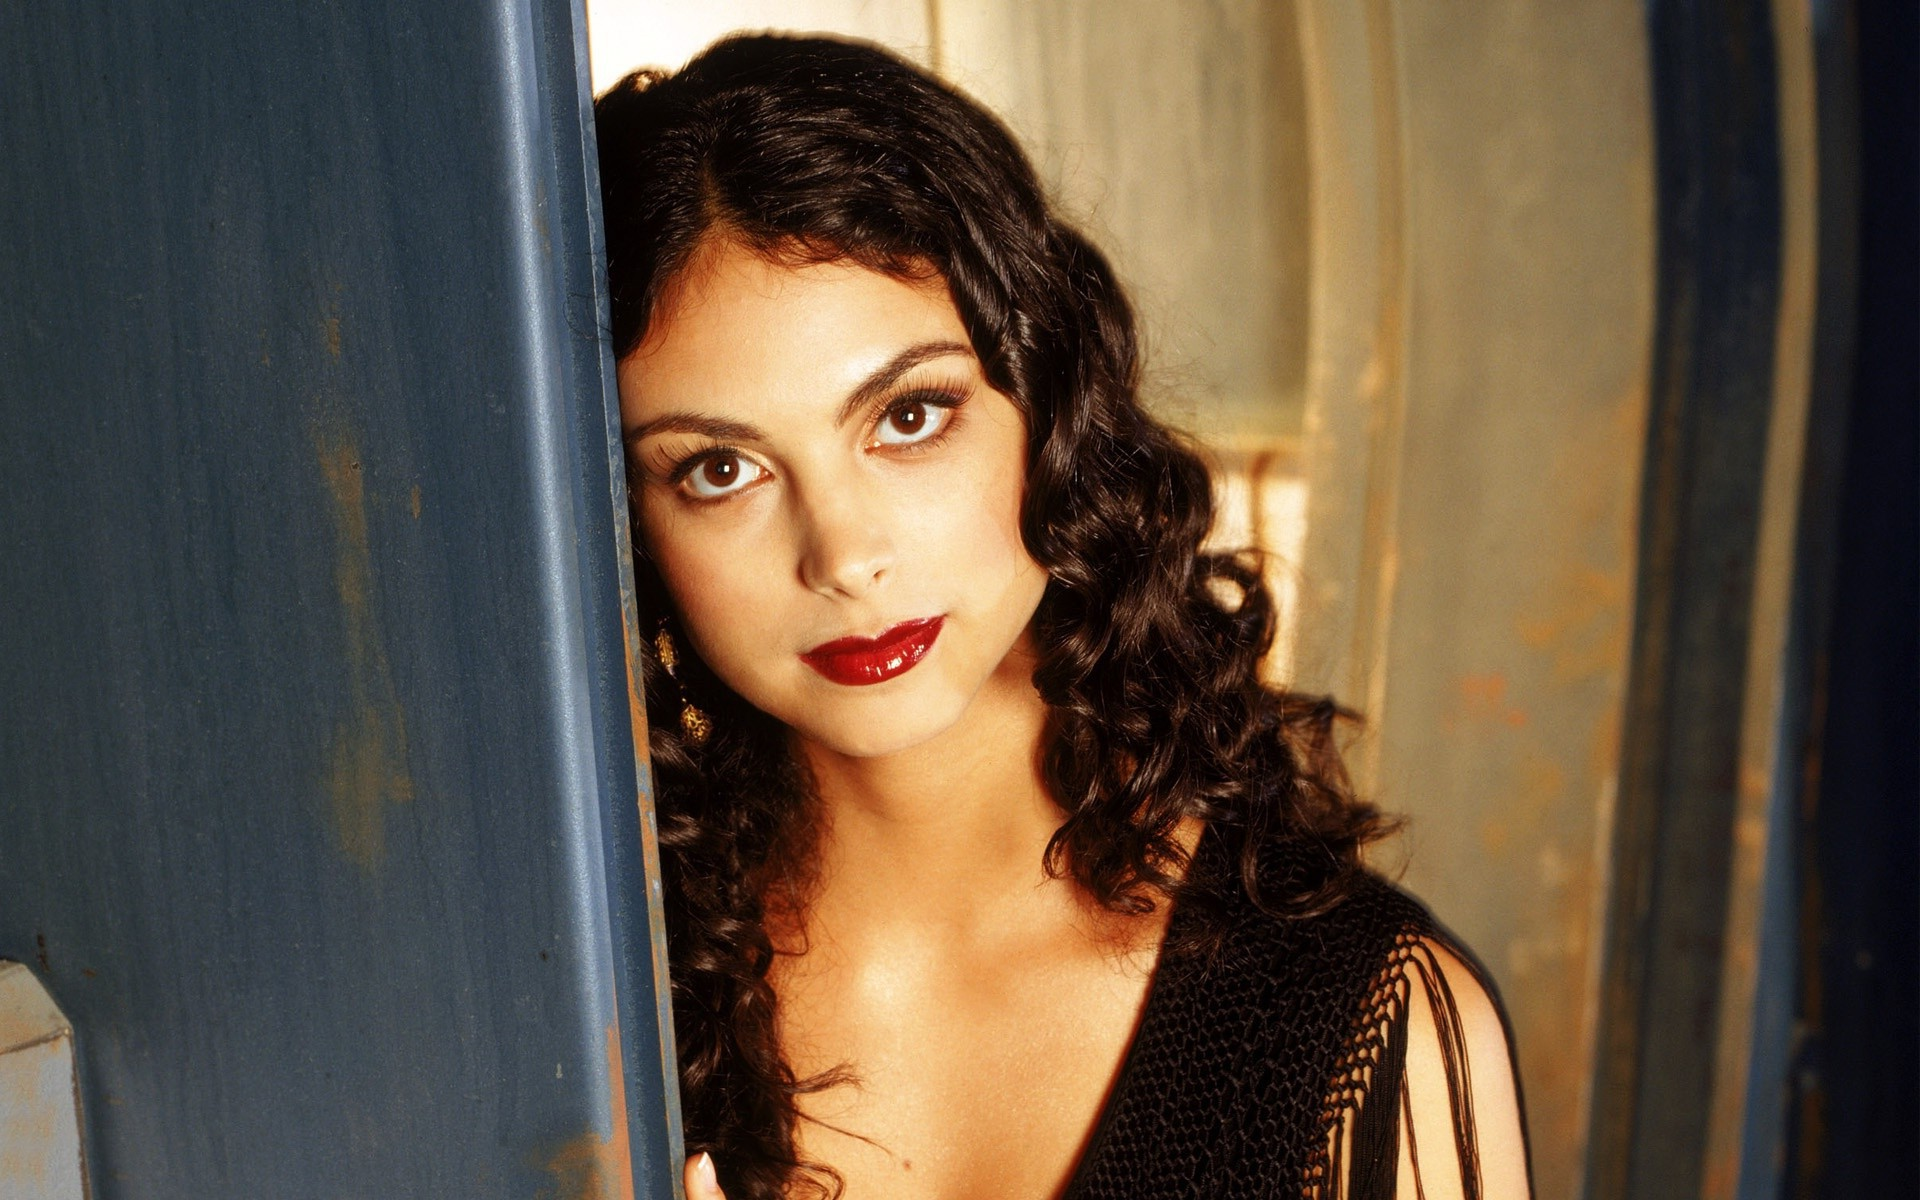 1920x1200 - Morena Baccarin Wallpapers 21